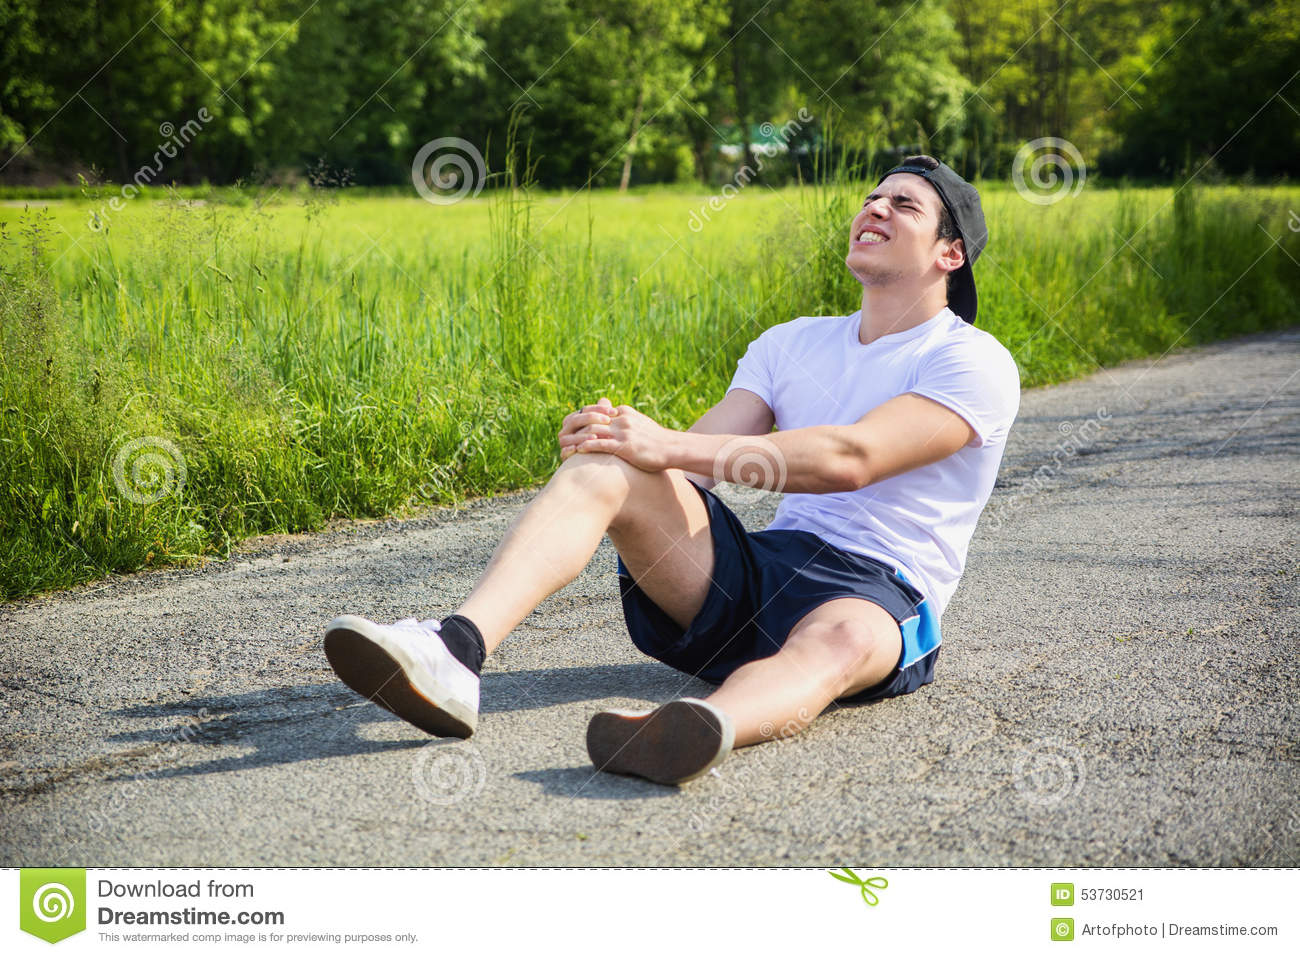 Handsome young man injured while running and